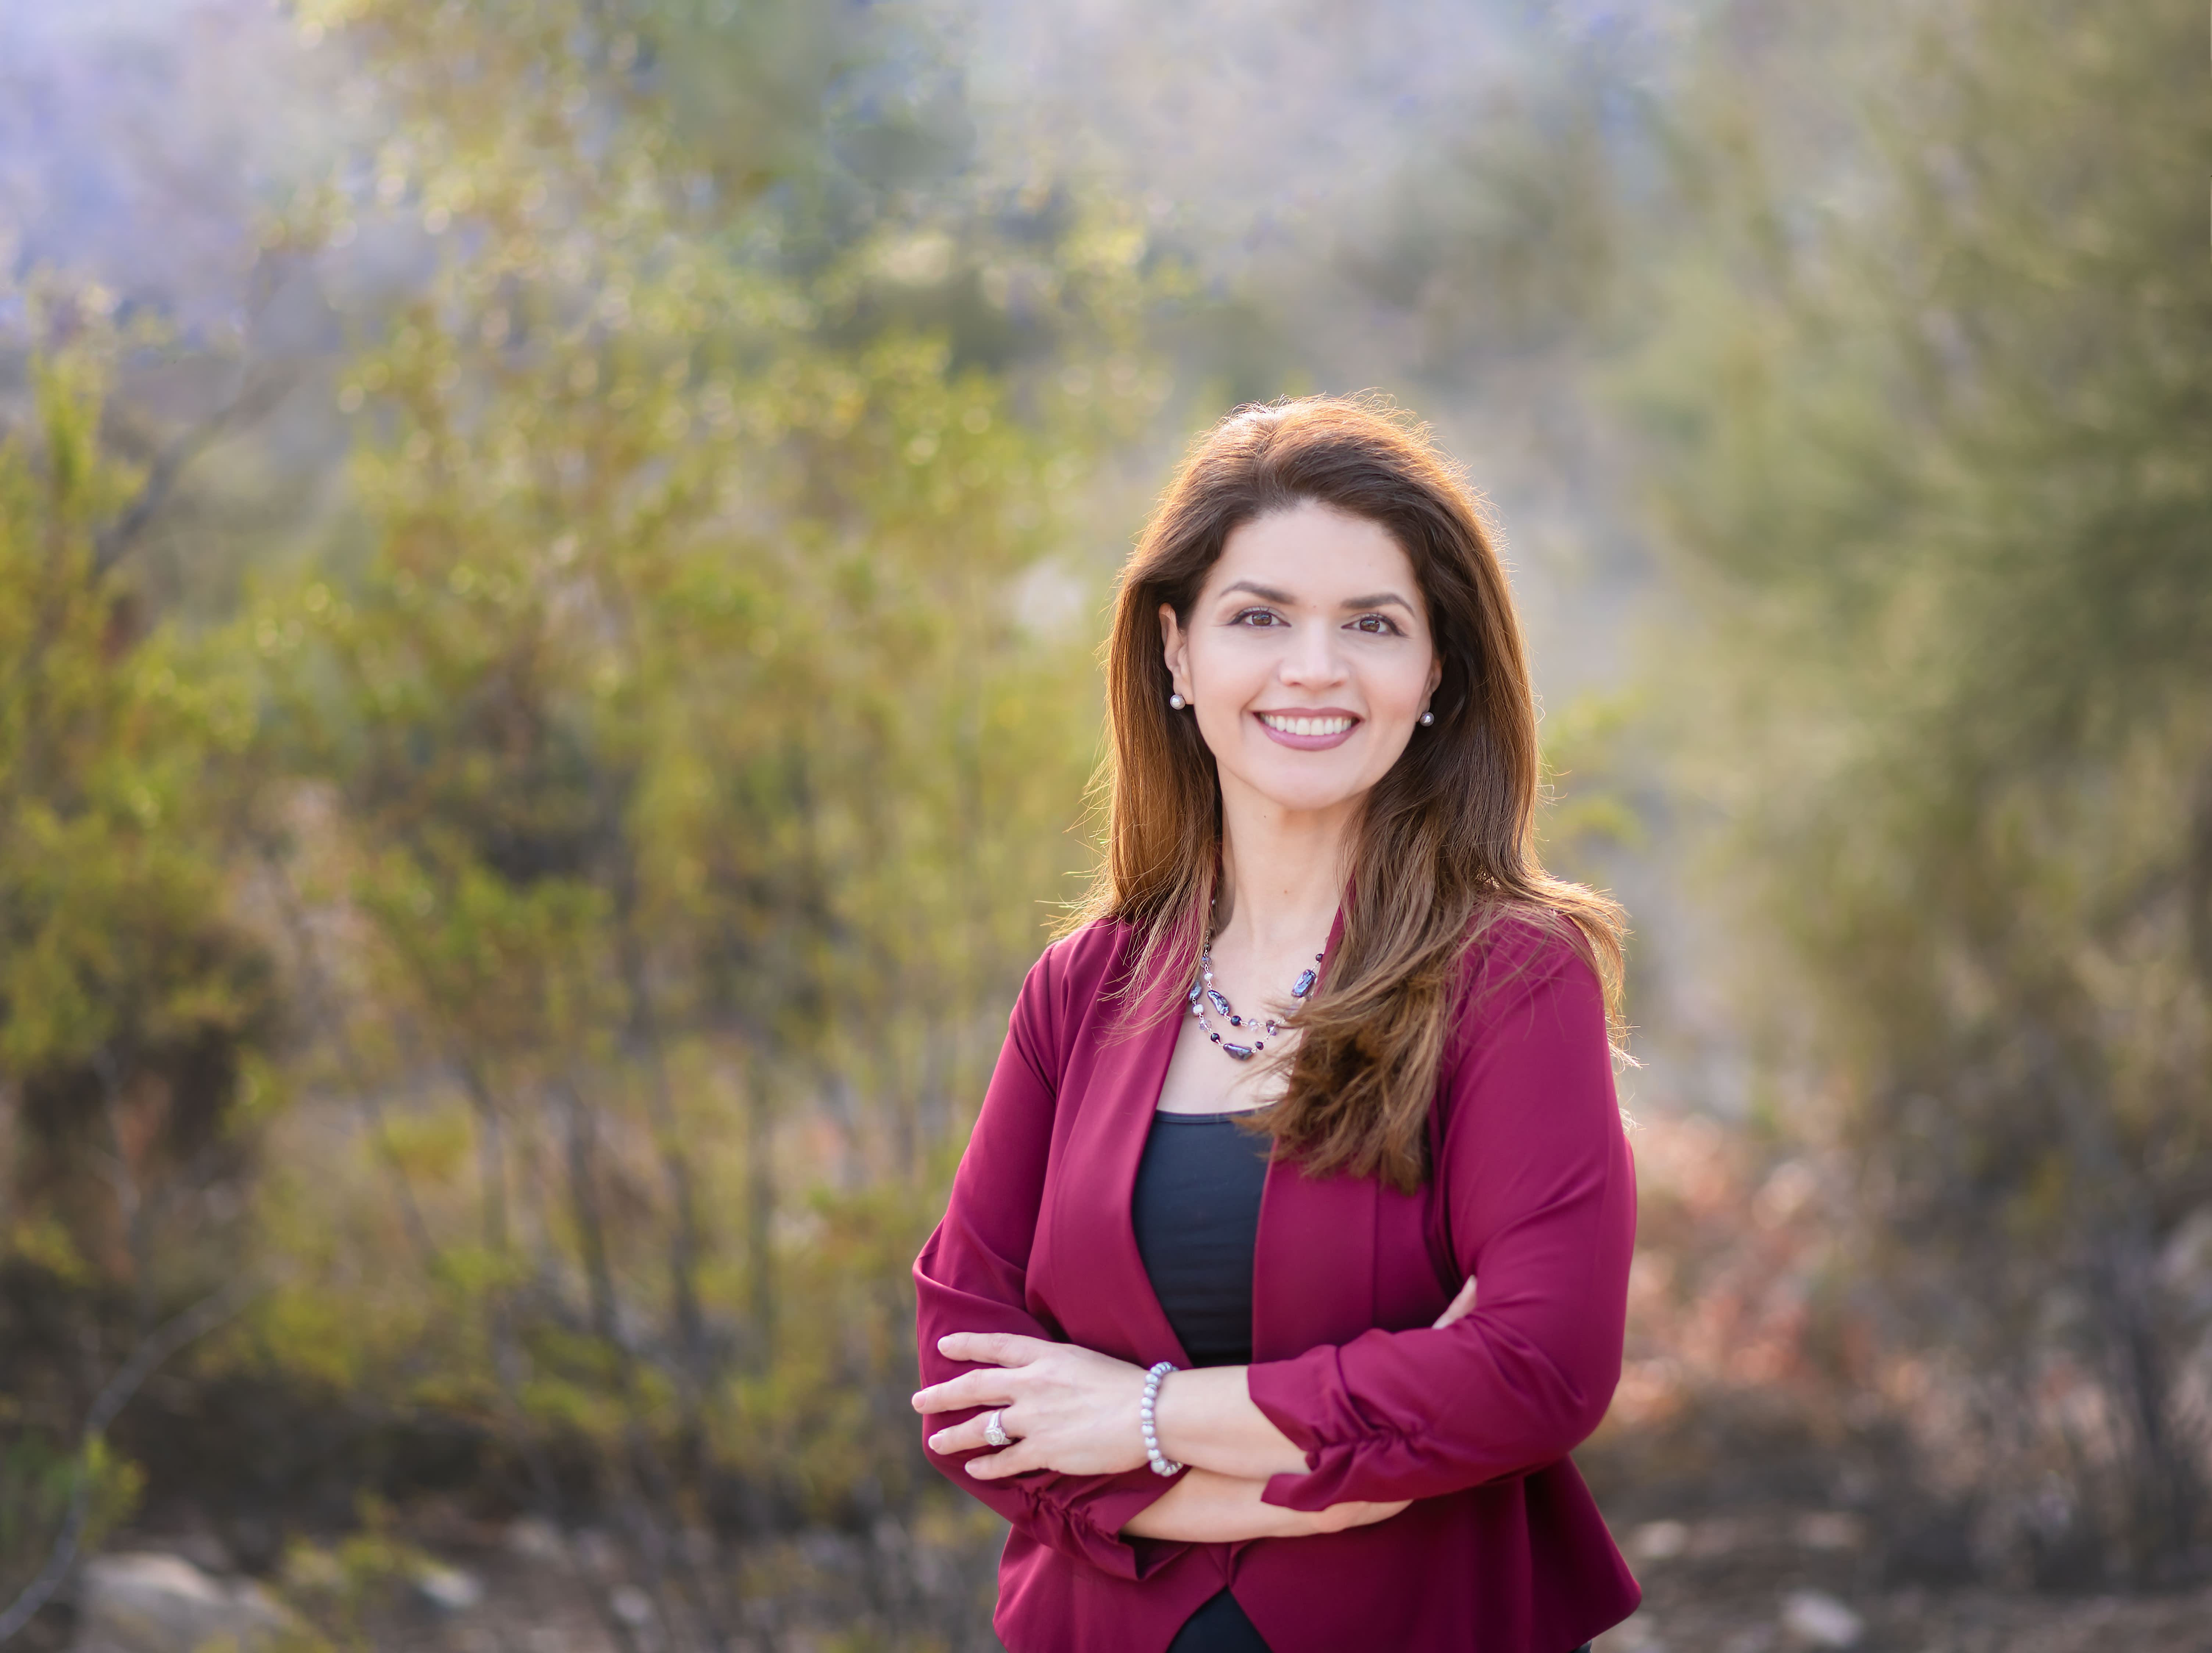 Regina Romero becomes first Latina mayor of Tucson, Arizona — and the only Latina mayor in the 50 largest cities in the US